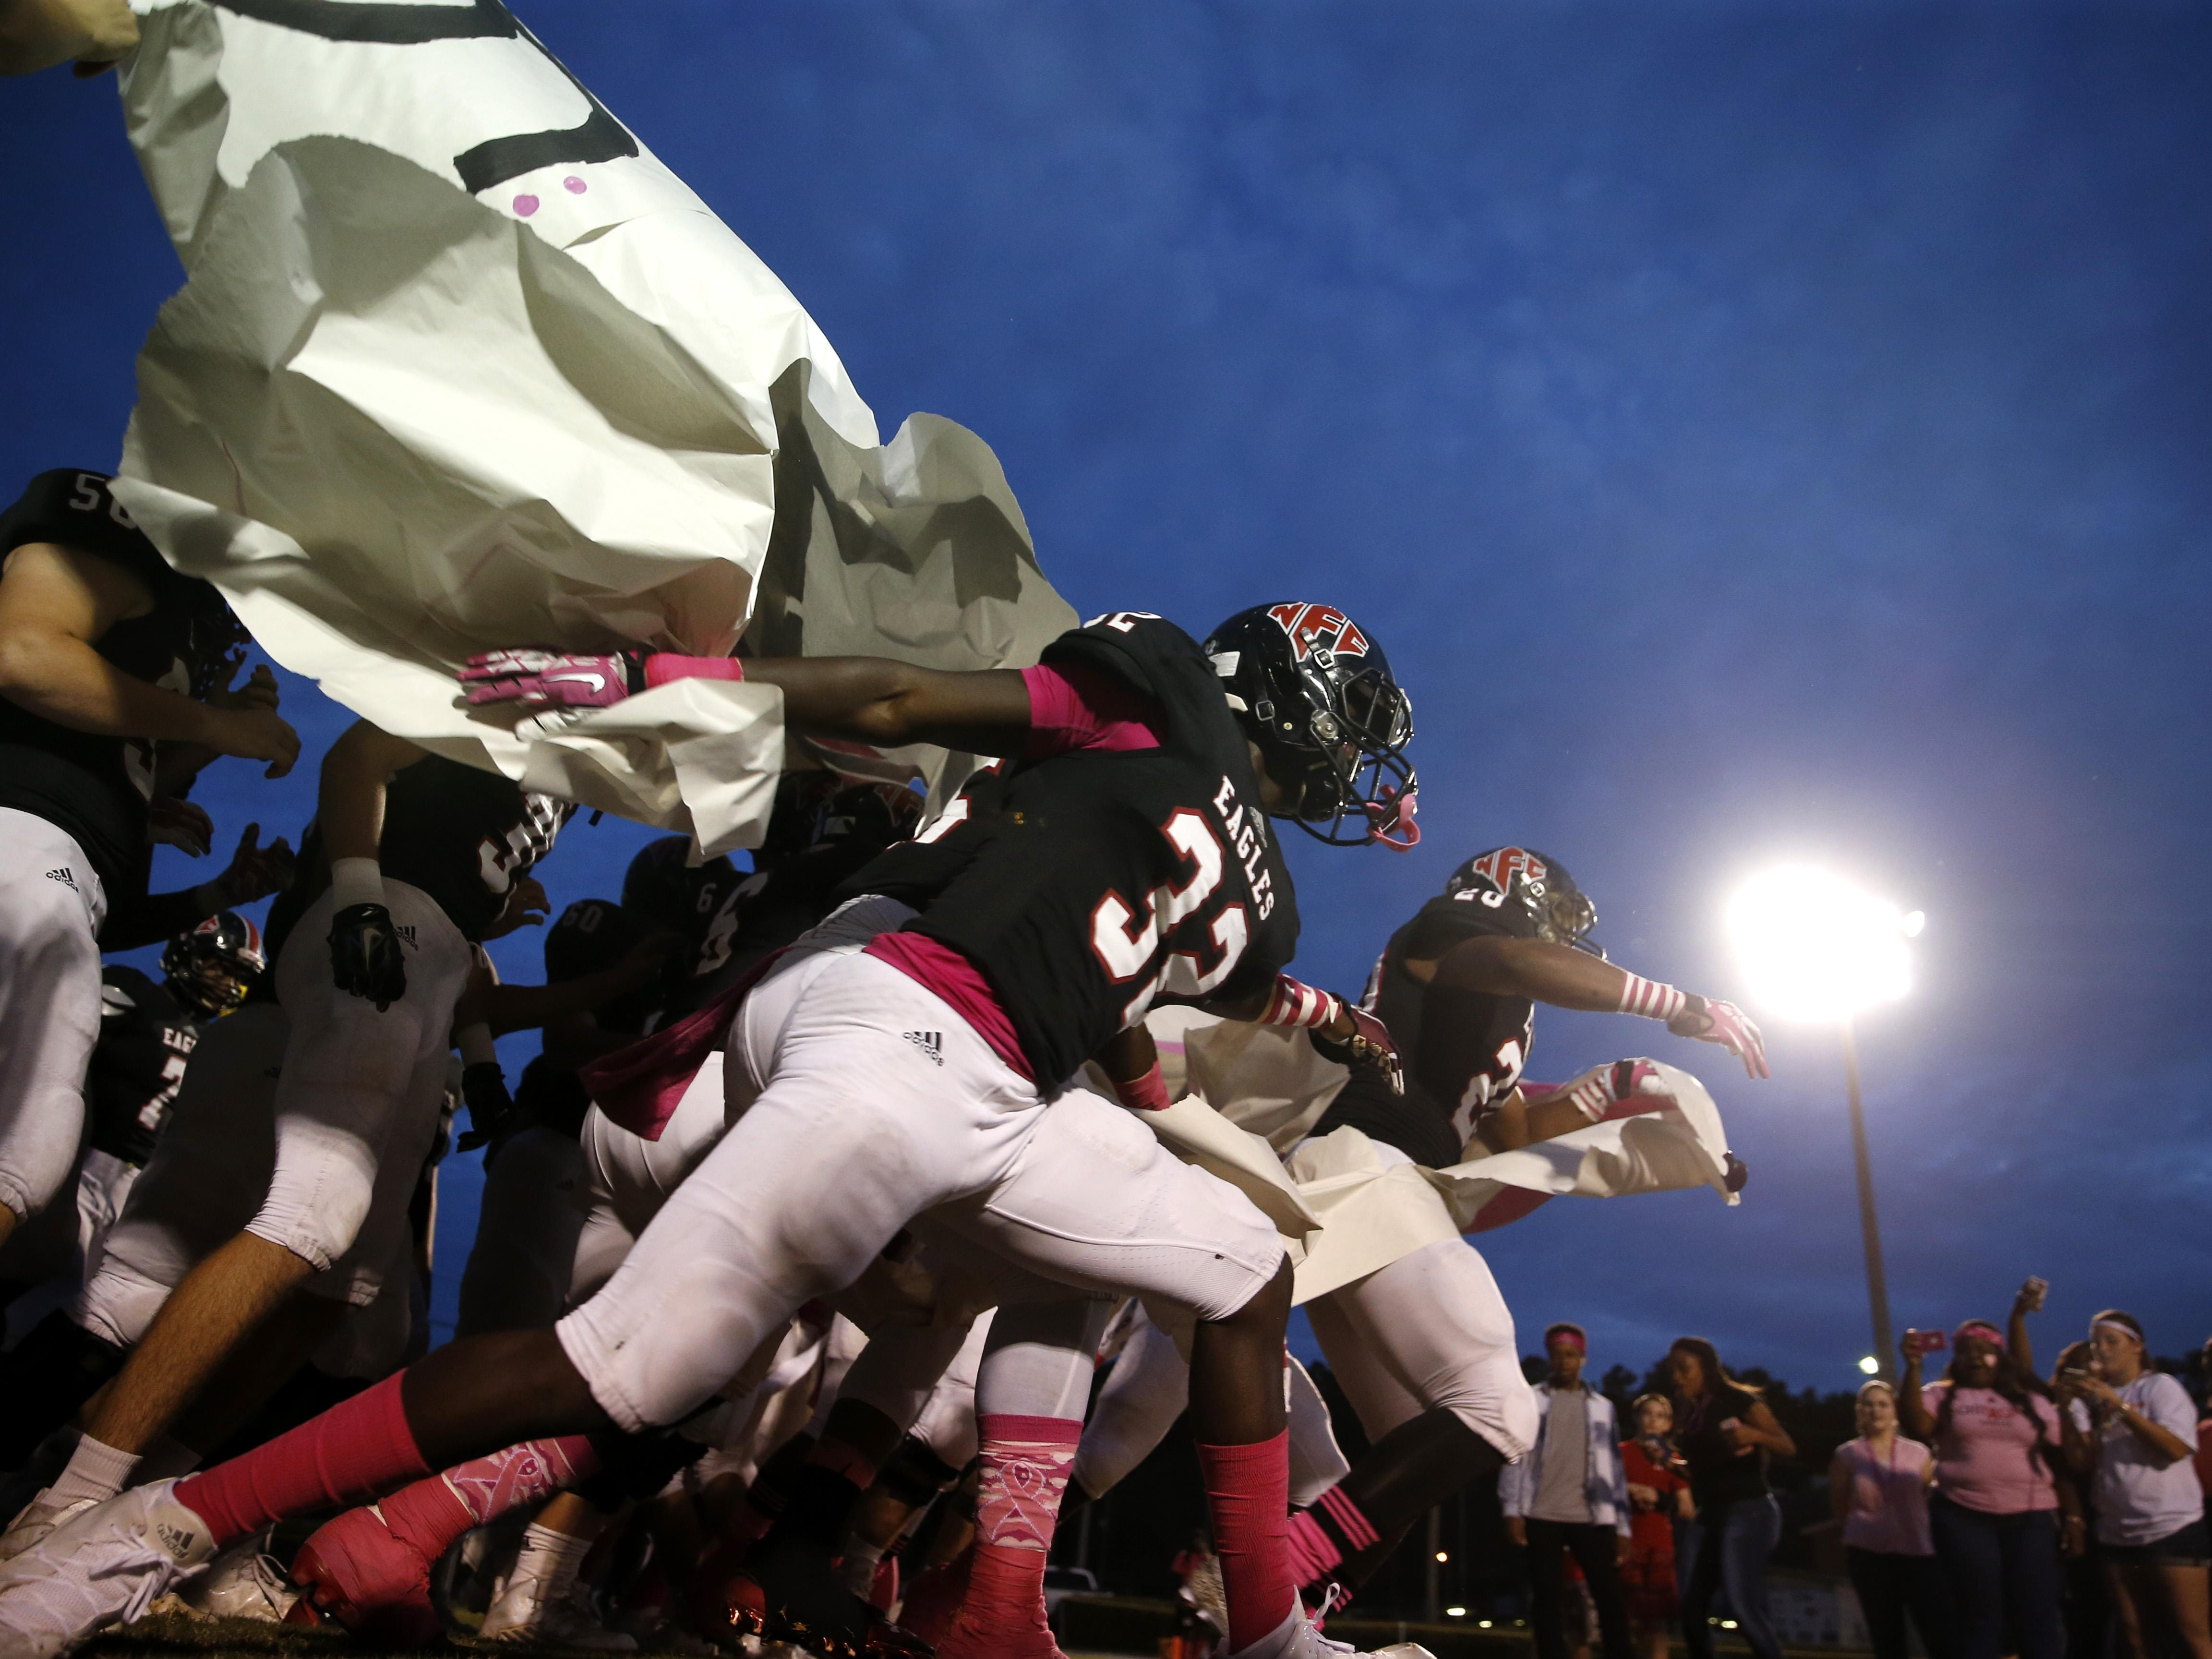 The NFC Eagles burst out on to their home field to play against Florida High on Friday.